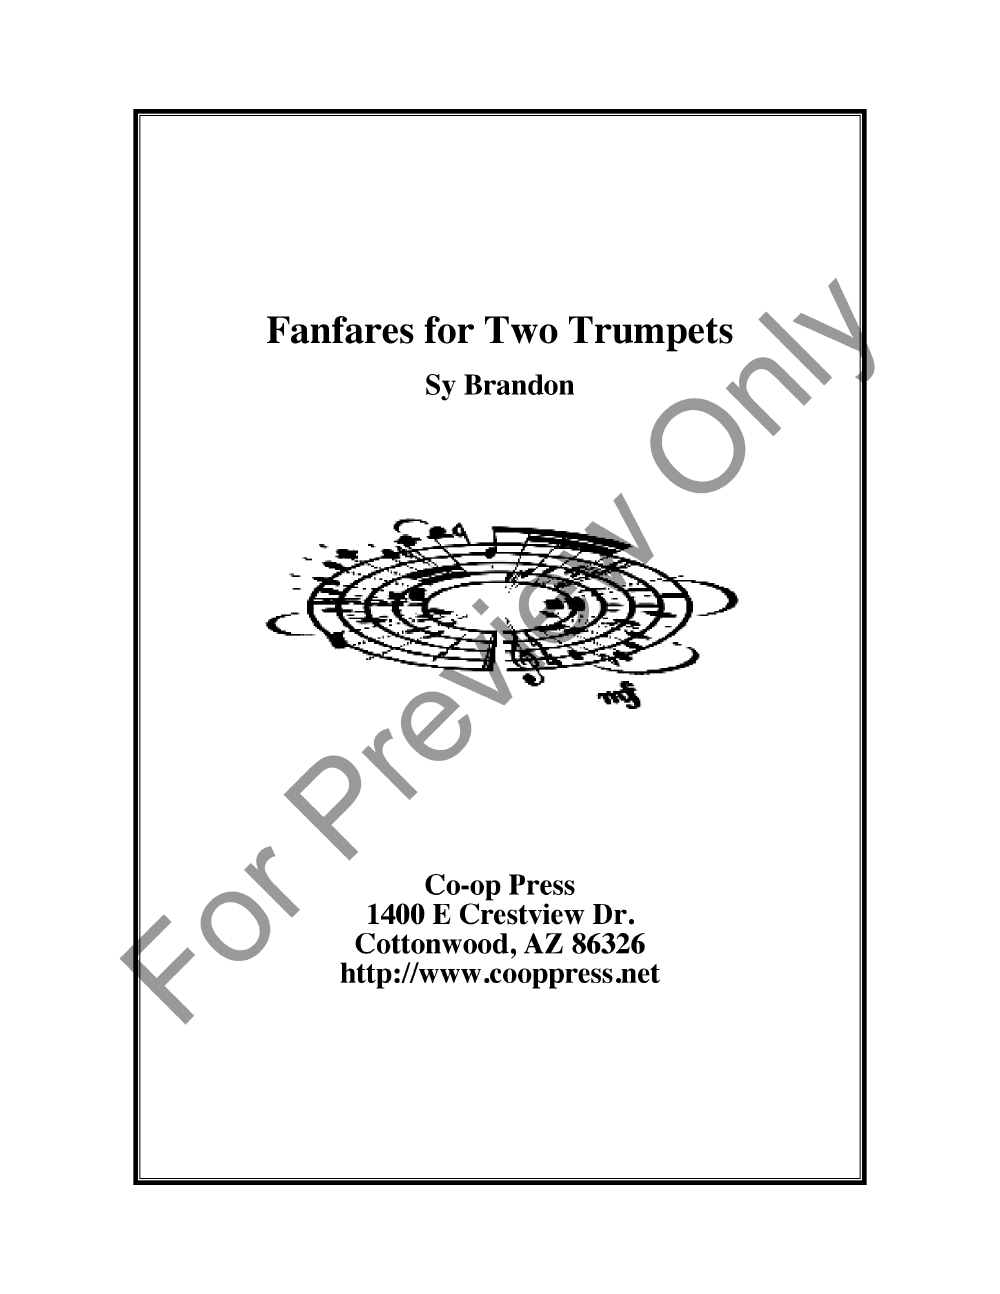 Fanfares for Two Trumpets Thumbnail